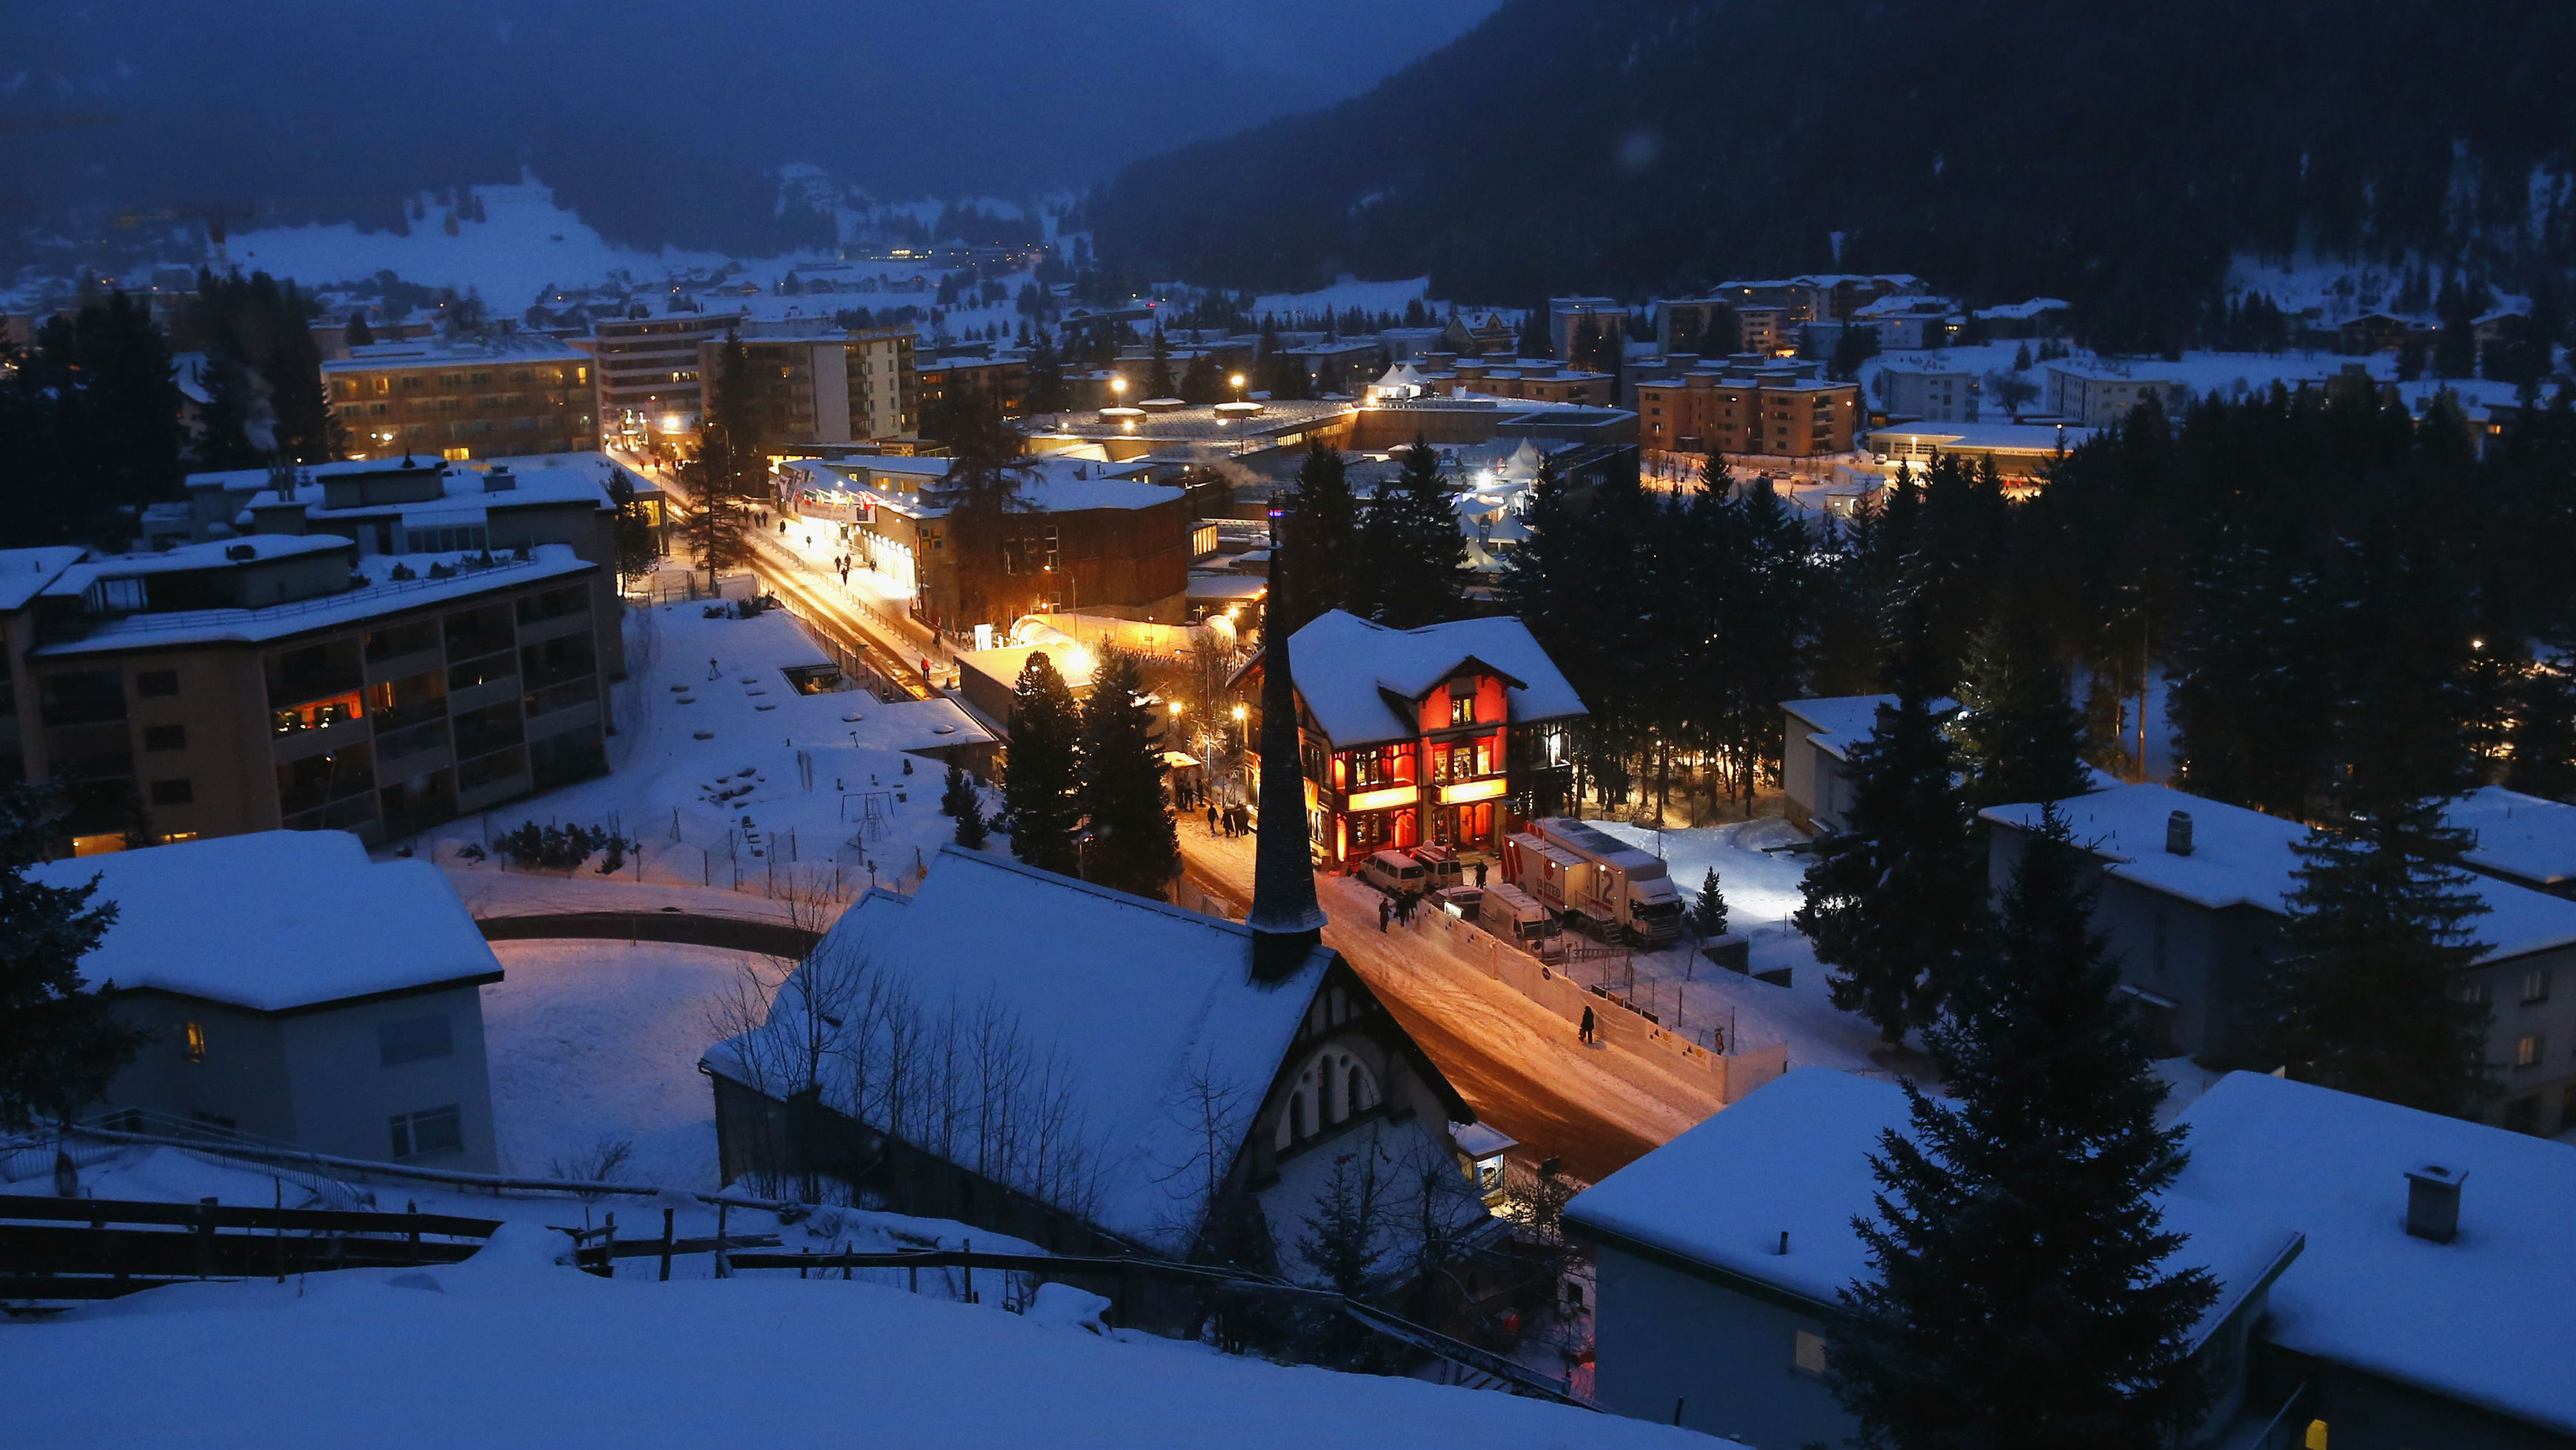 The context at Davos is quite pretty.